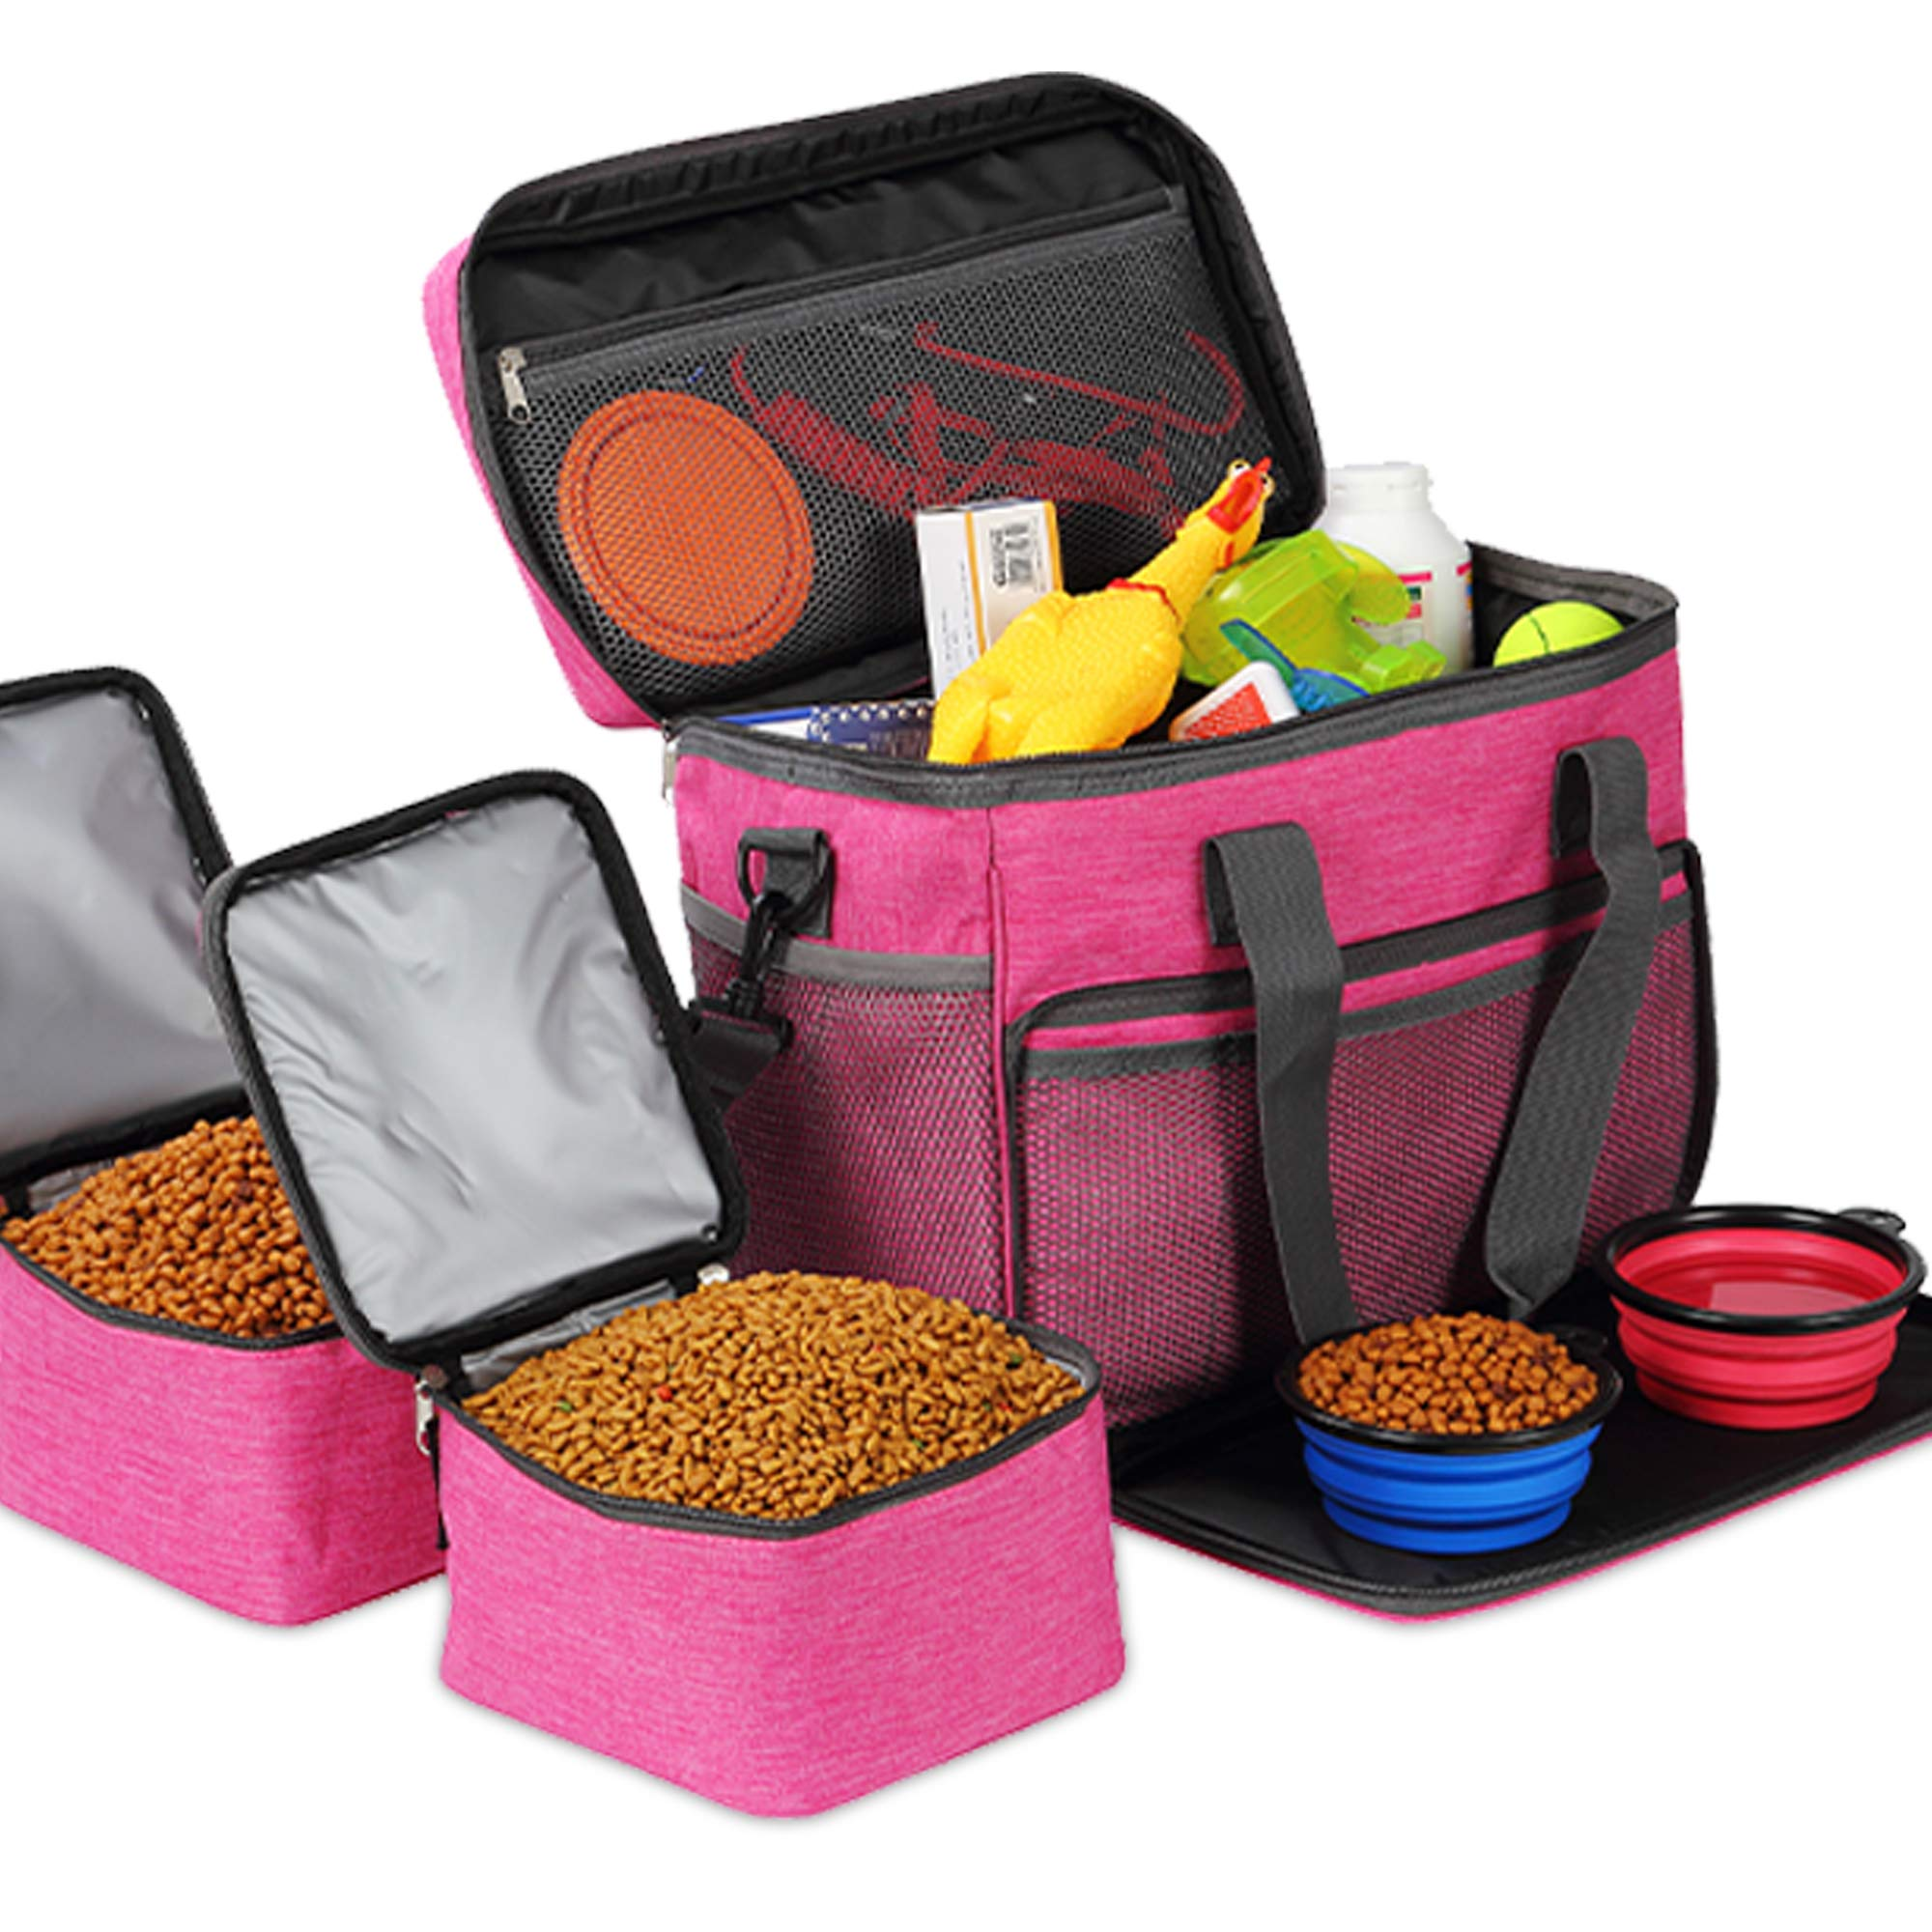 KOPEKS Cat and Dog Travel Bag - Includes 2 Food Carriers, 2 Bowls and Place mat - Airline Approved - Heather Pink by KOPEKS